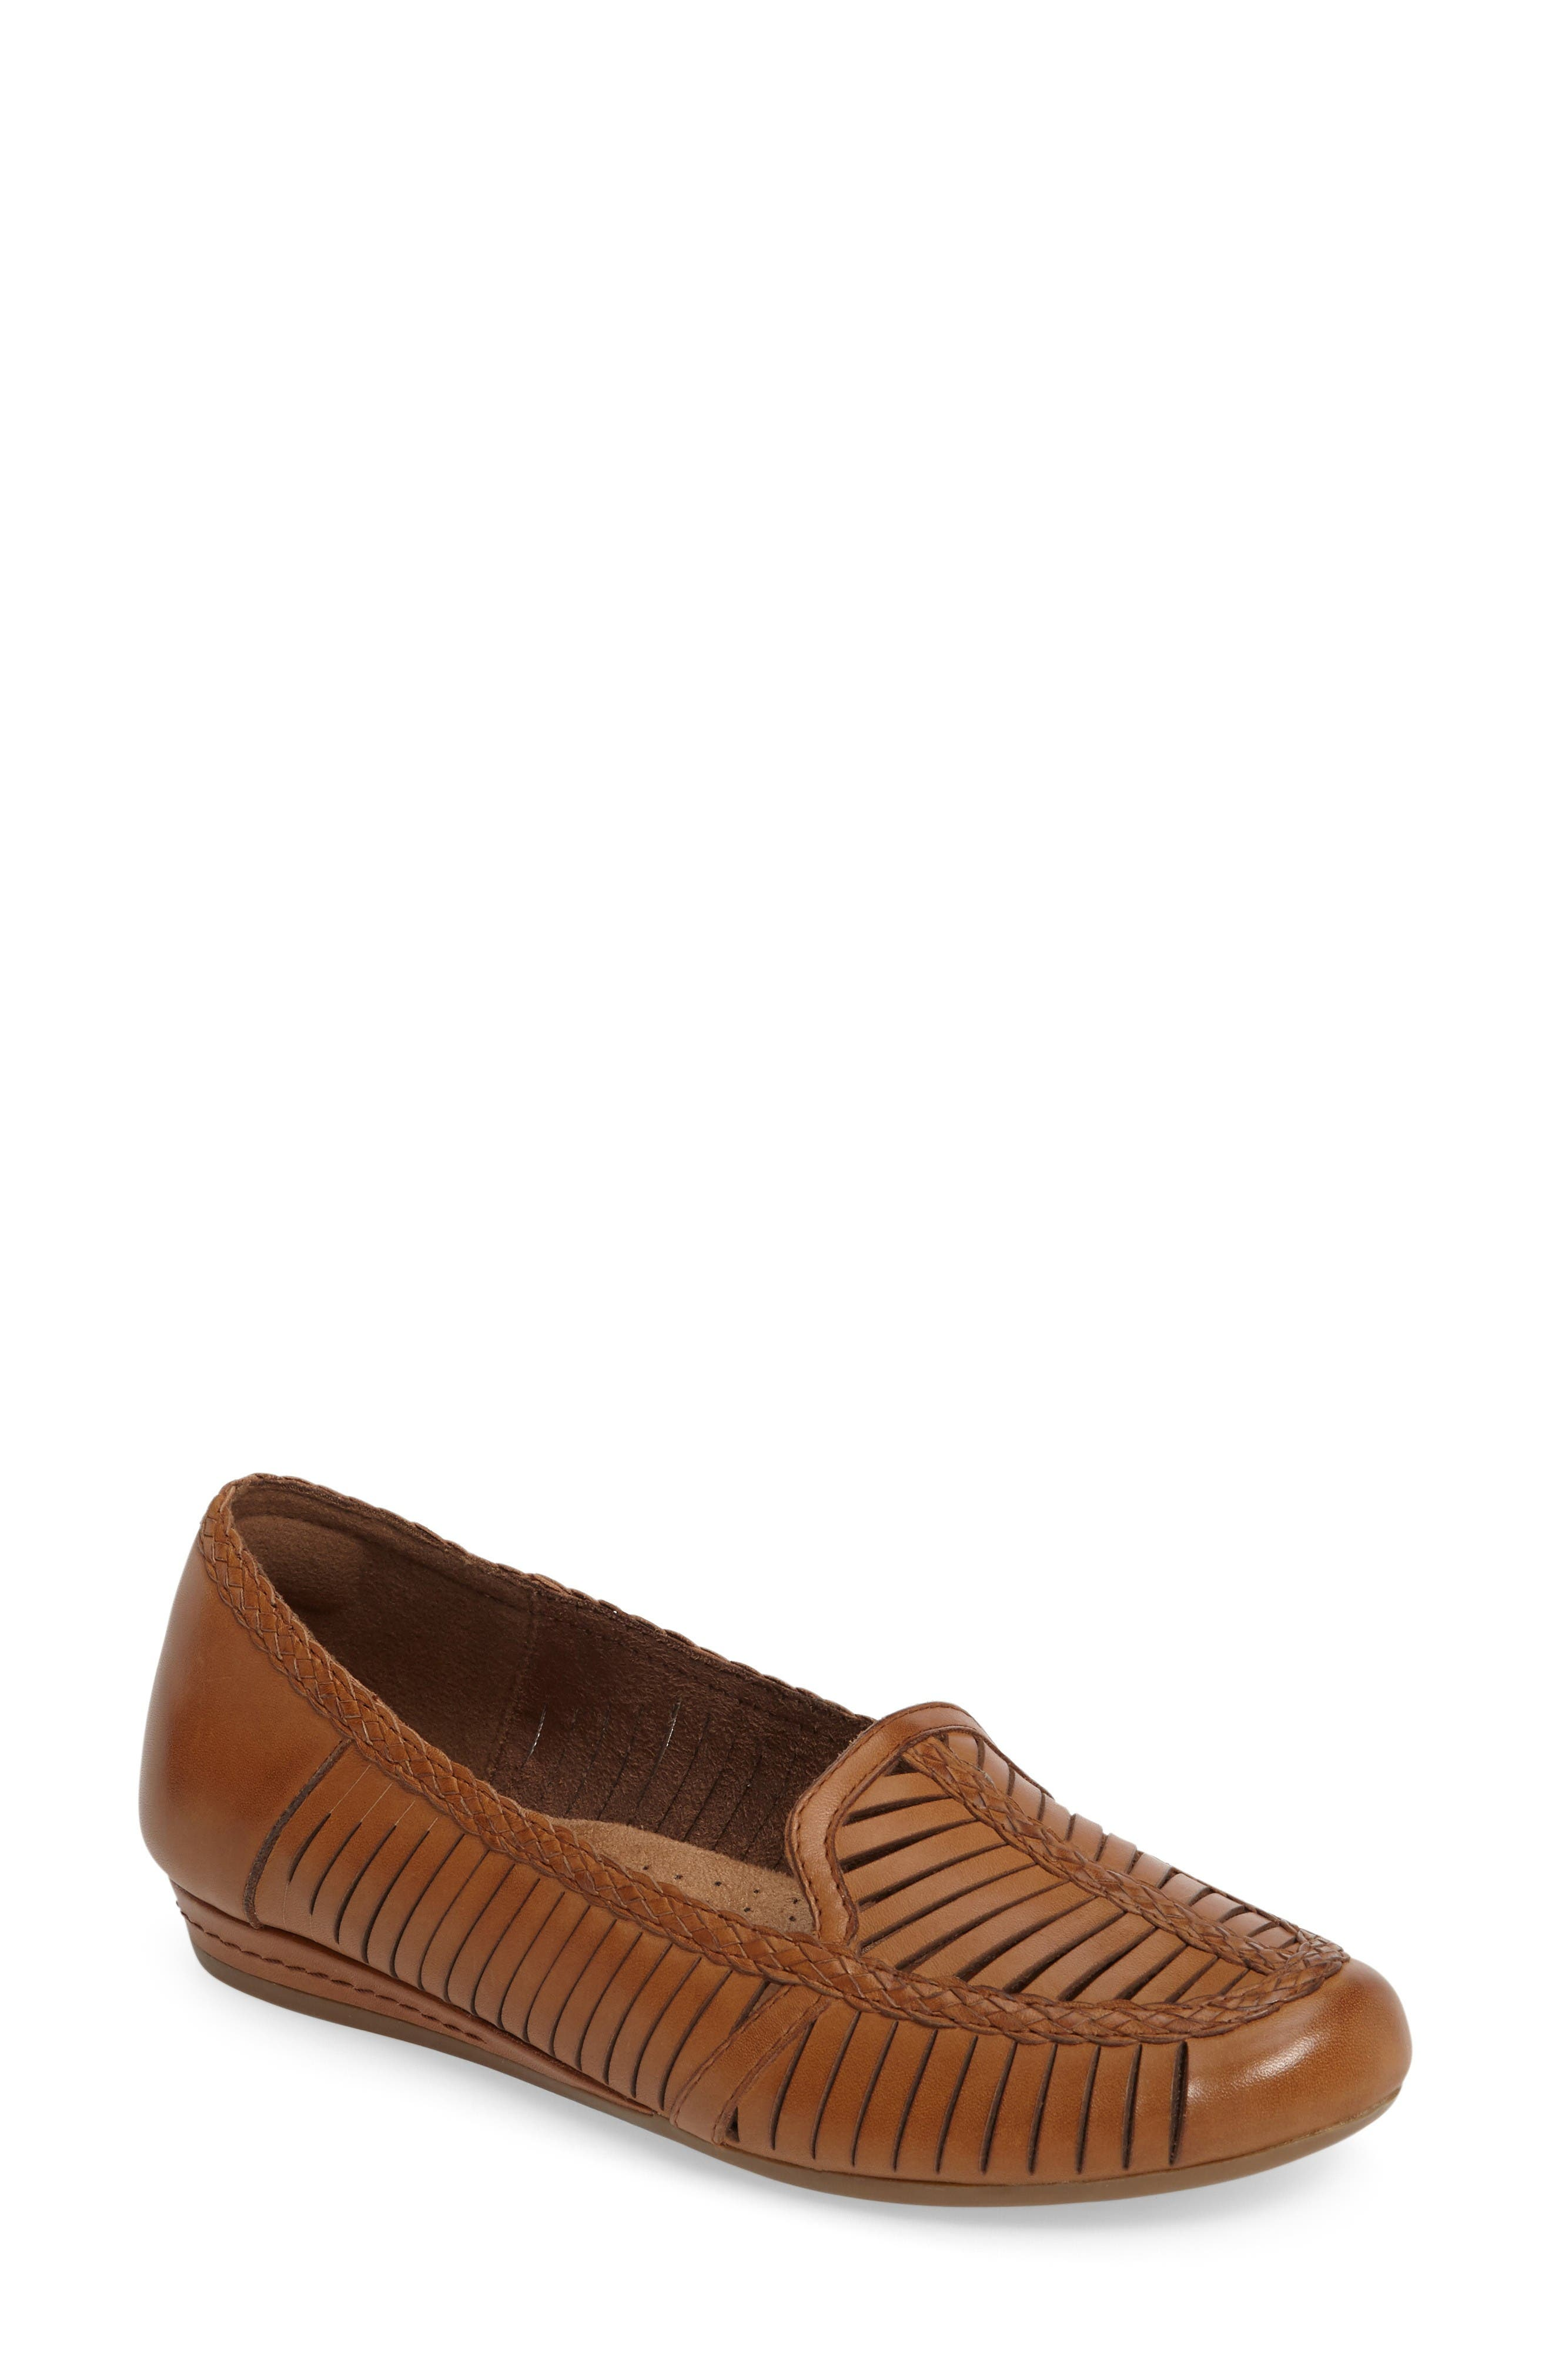 Galway Loafer,                             Main thumbnail 1, color,                             Tan Multi Leather